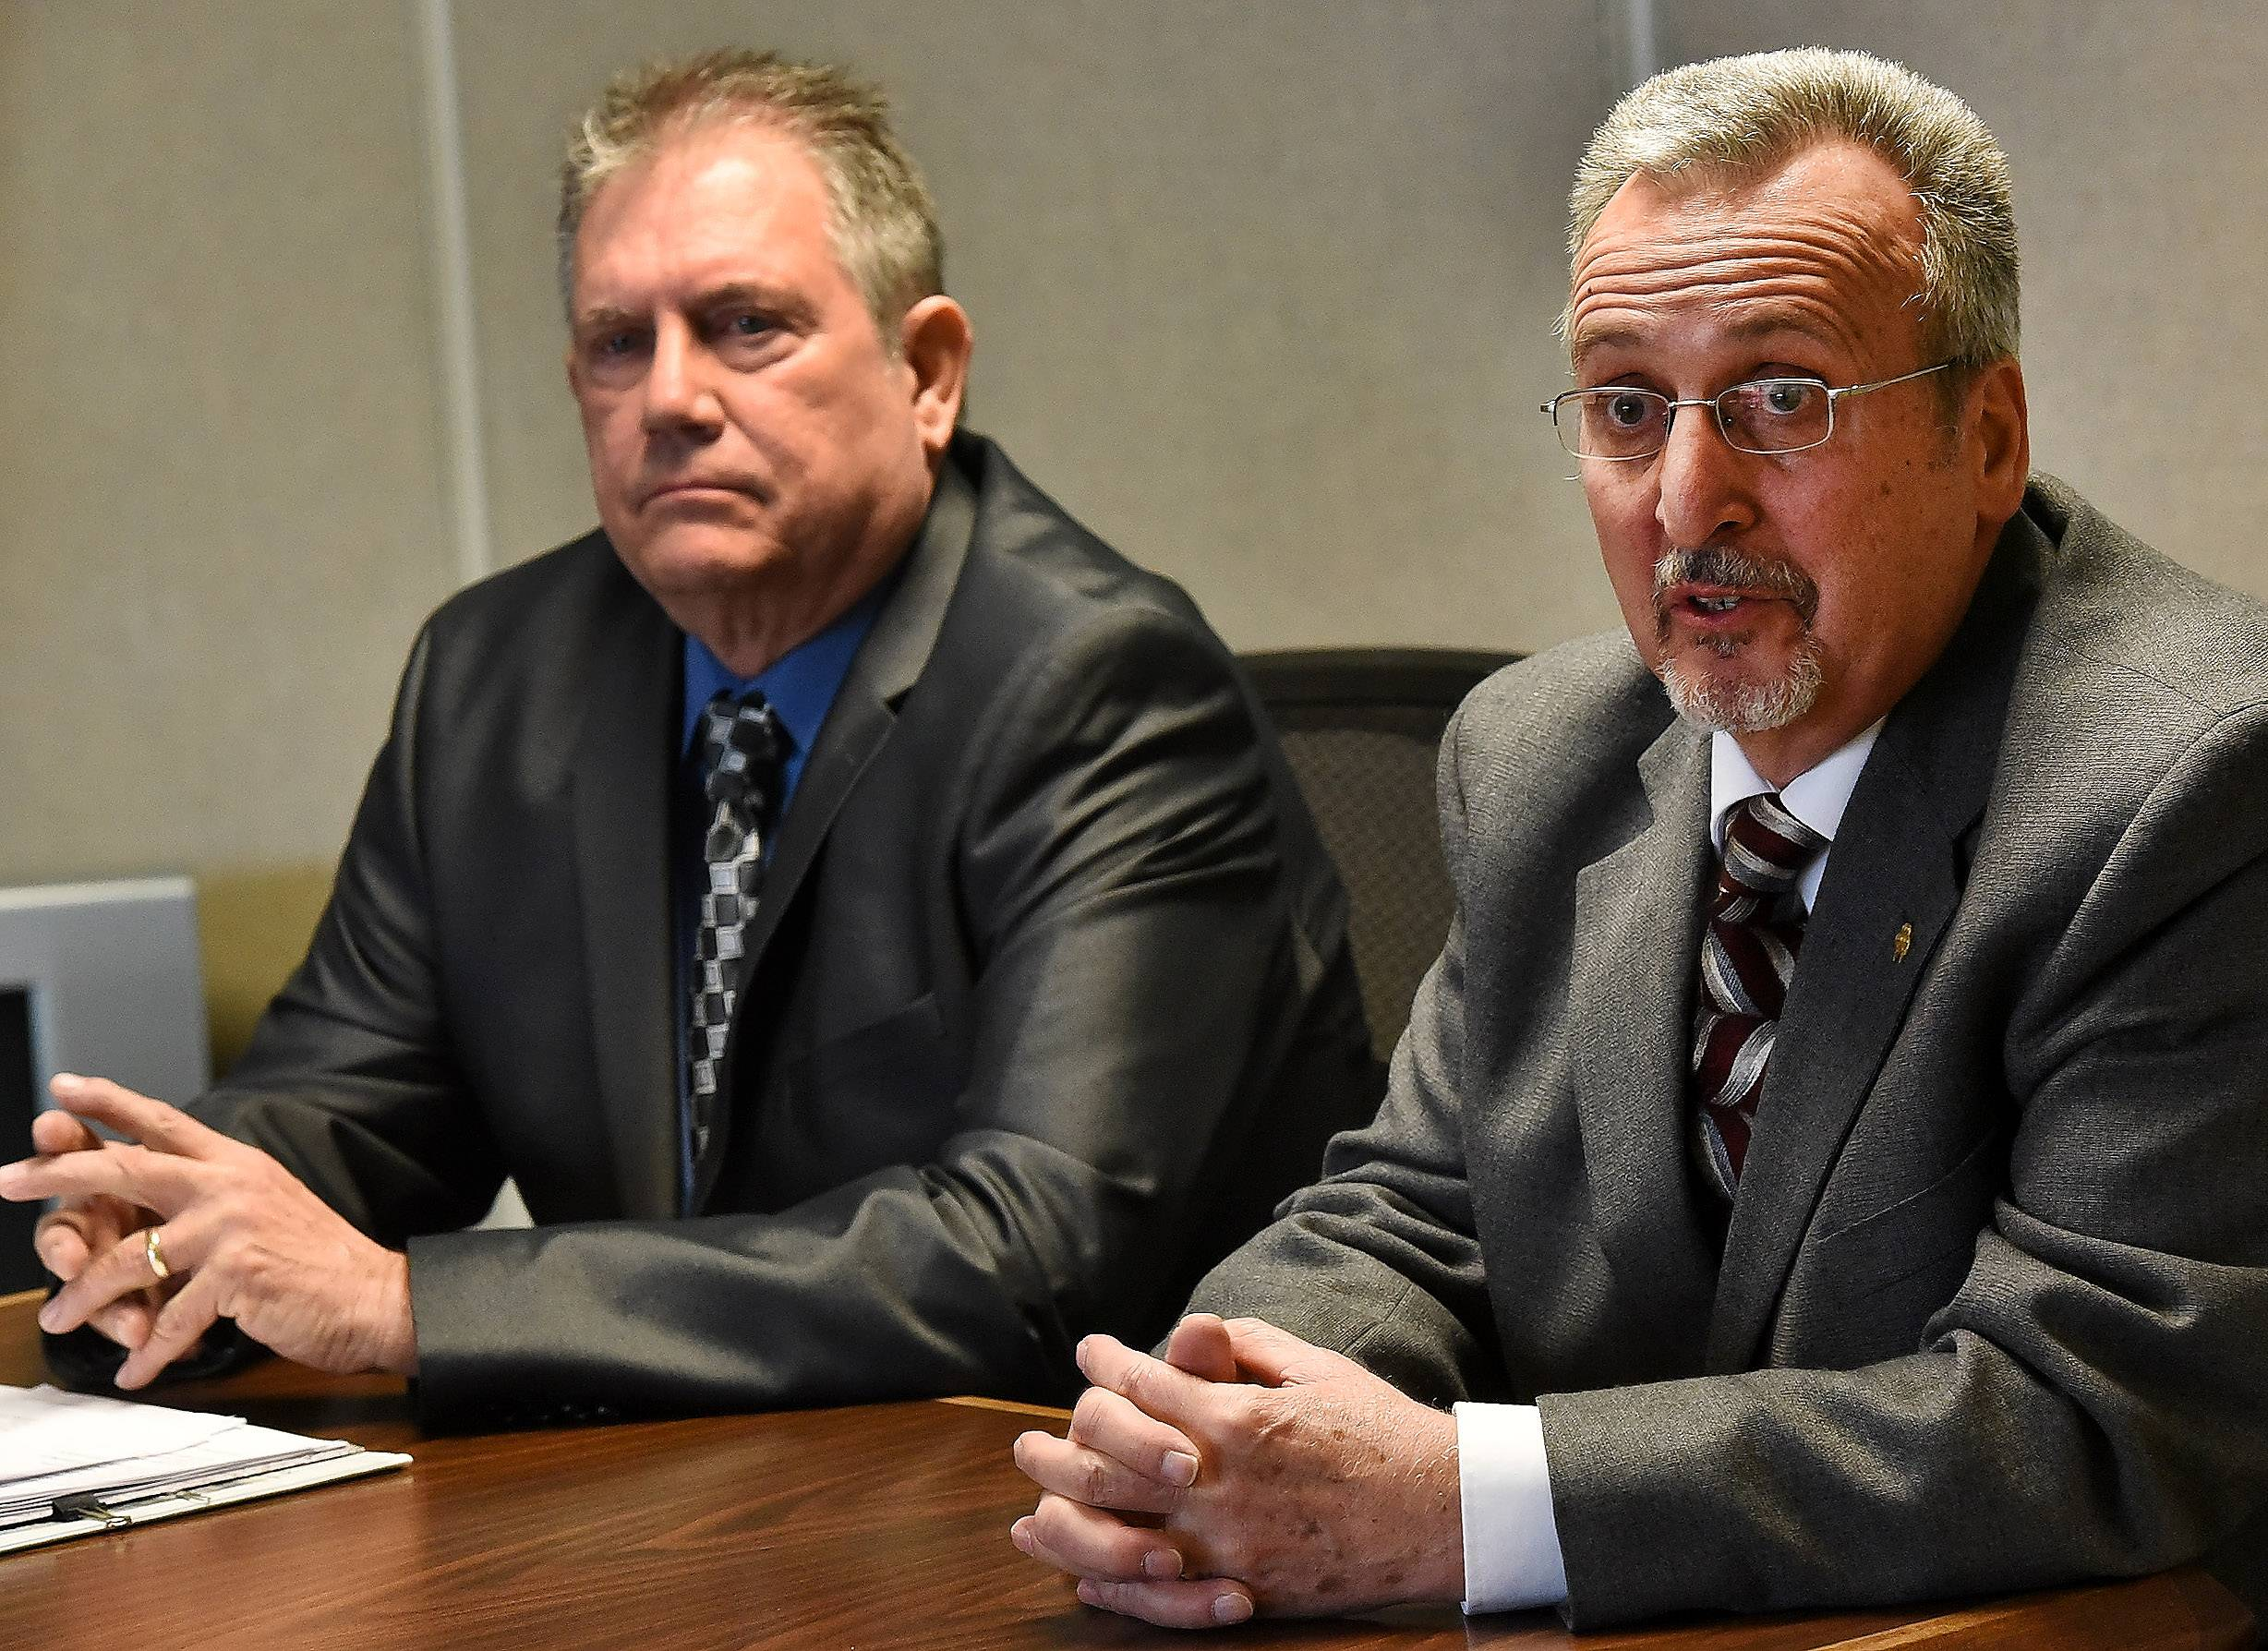 Wayne Domke, left, and Andrew Maglio are running for Roselle village president in the April 4 election to replace the retiring Gayle Smolinski.